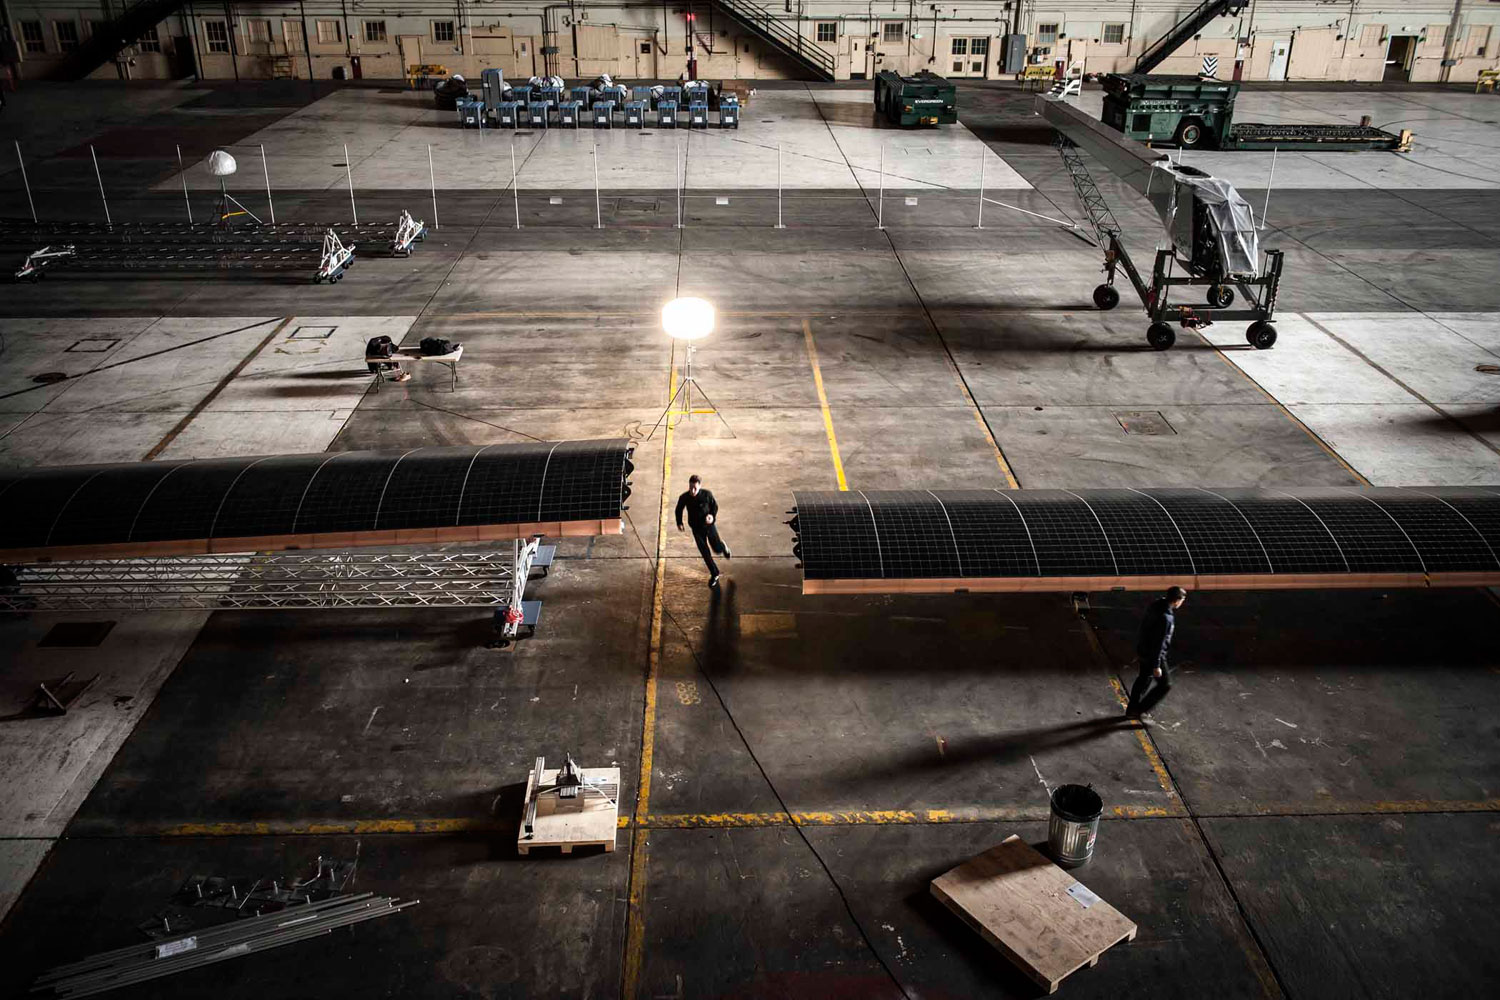 Solar Impulse's HB-SIA prototype is being reassembled after arriving from Switzerland on board a Boeing 747 cargo plane in Mountain View, Calif.